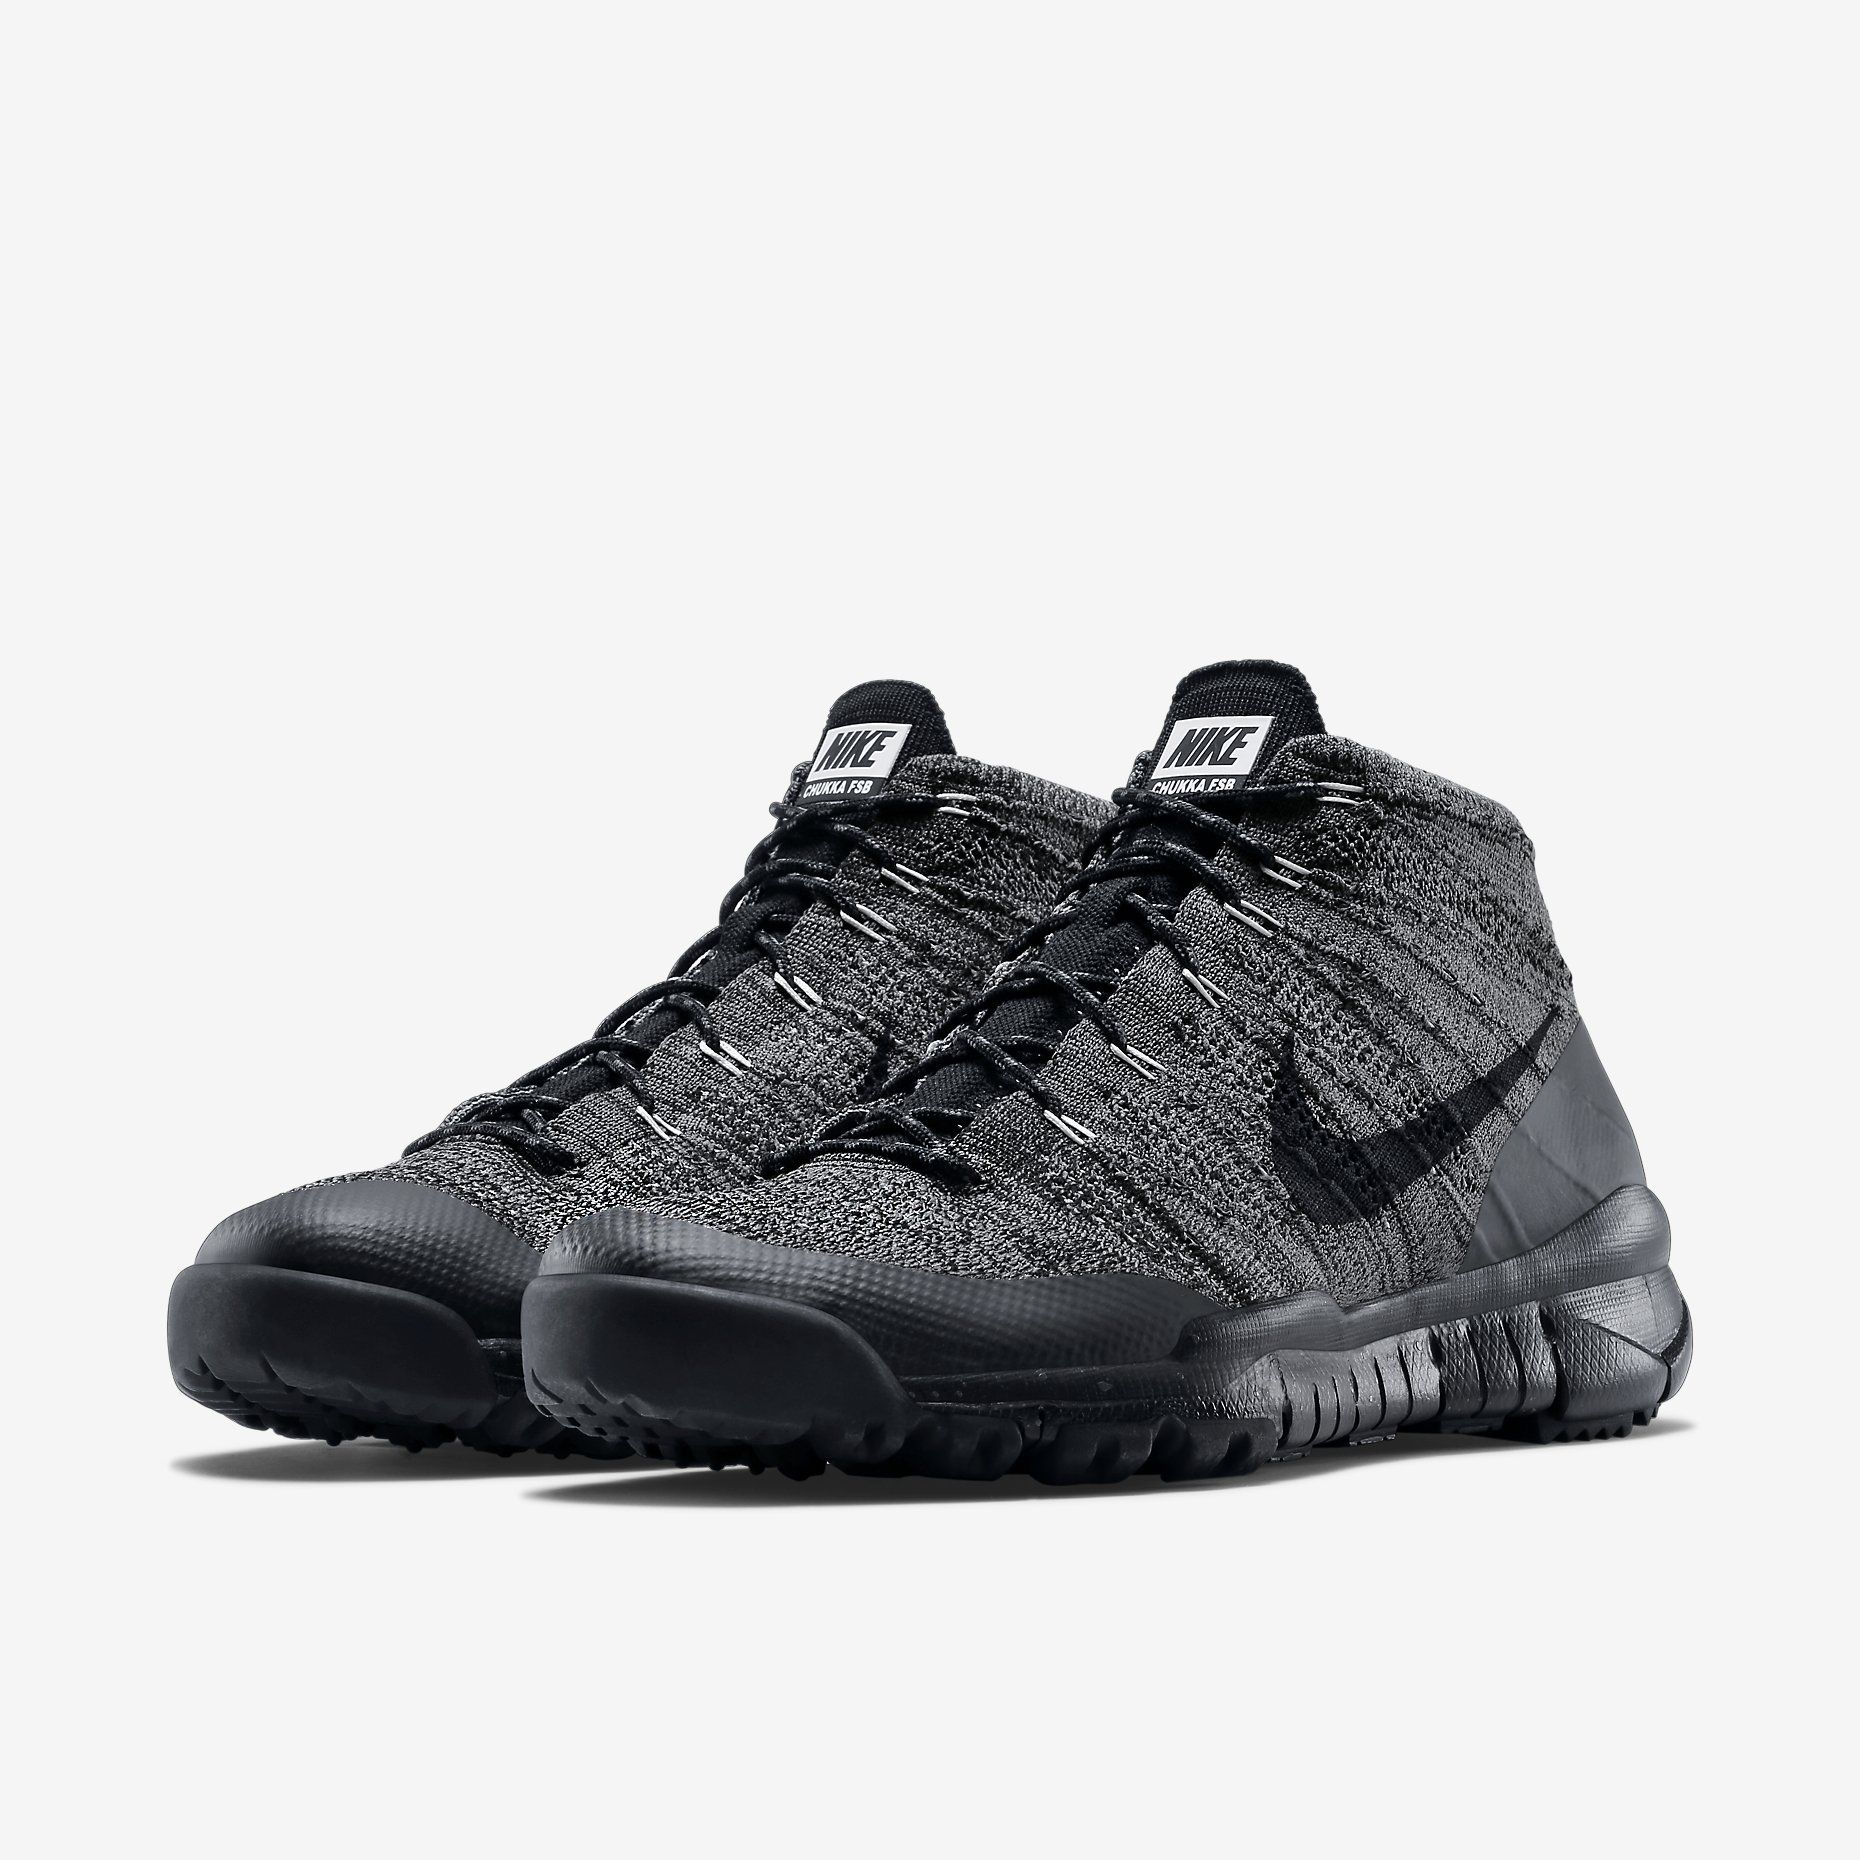 db93d9b794916 Nike Flyknit Trainer Chukka SFB Men s Shoe. Nike Store UK